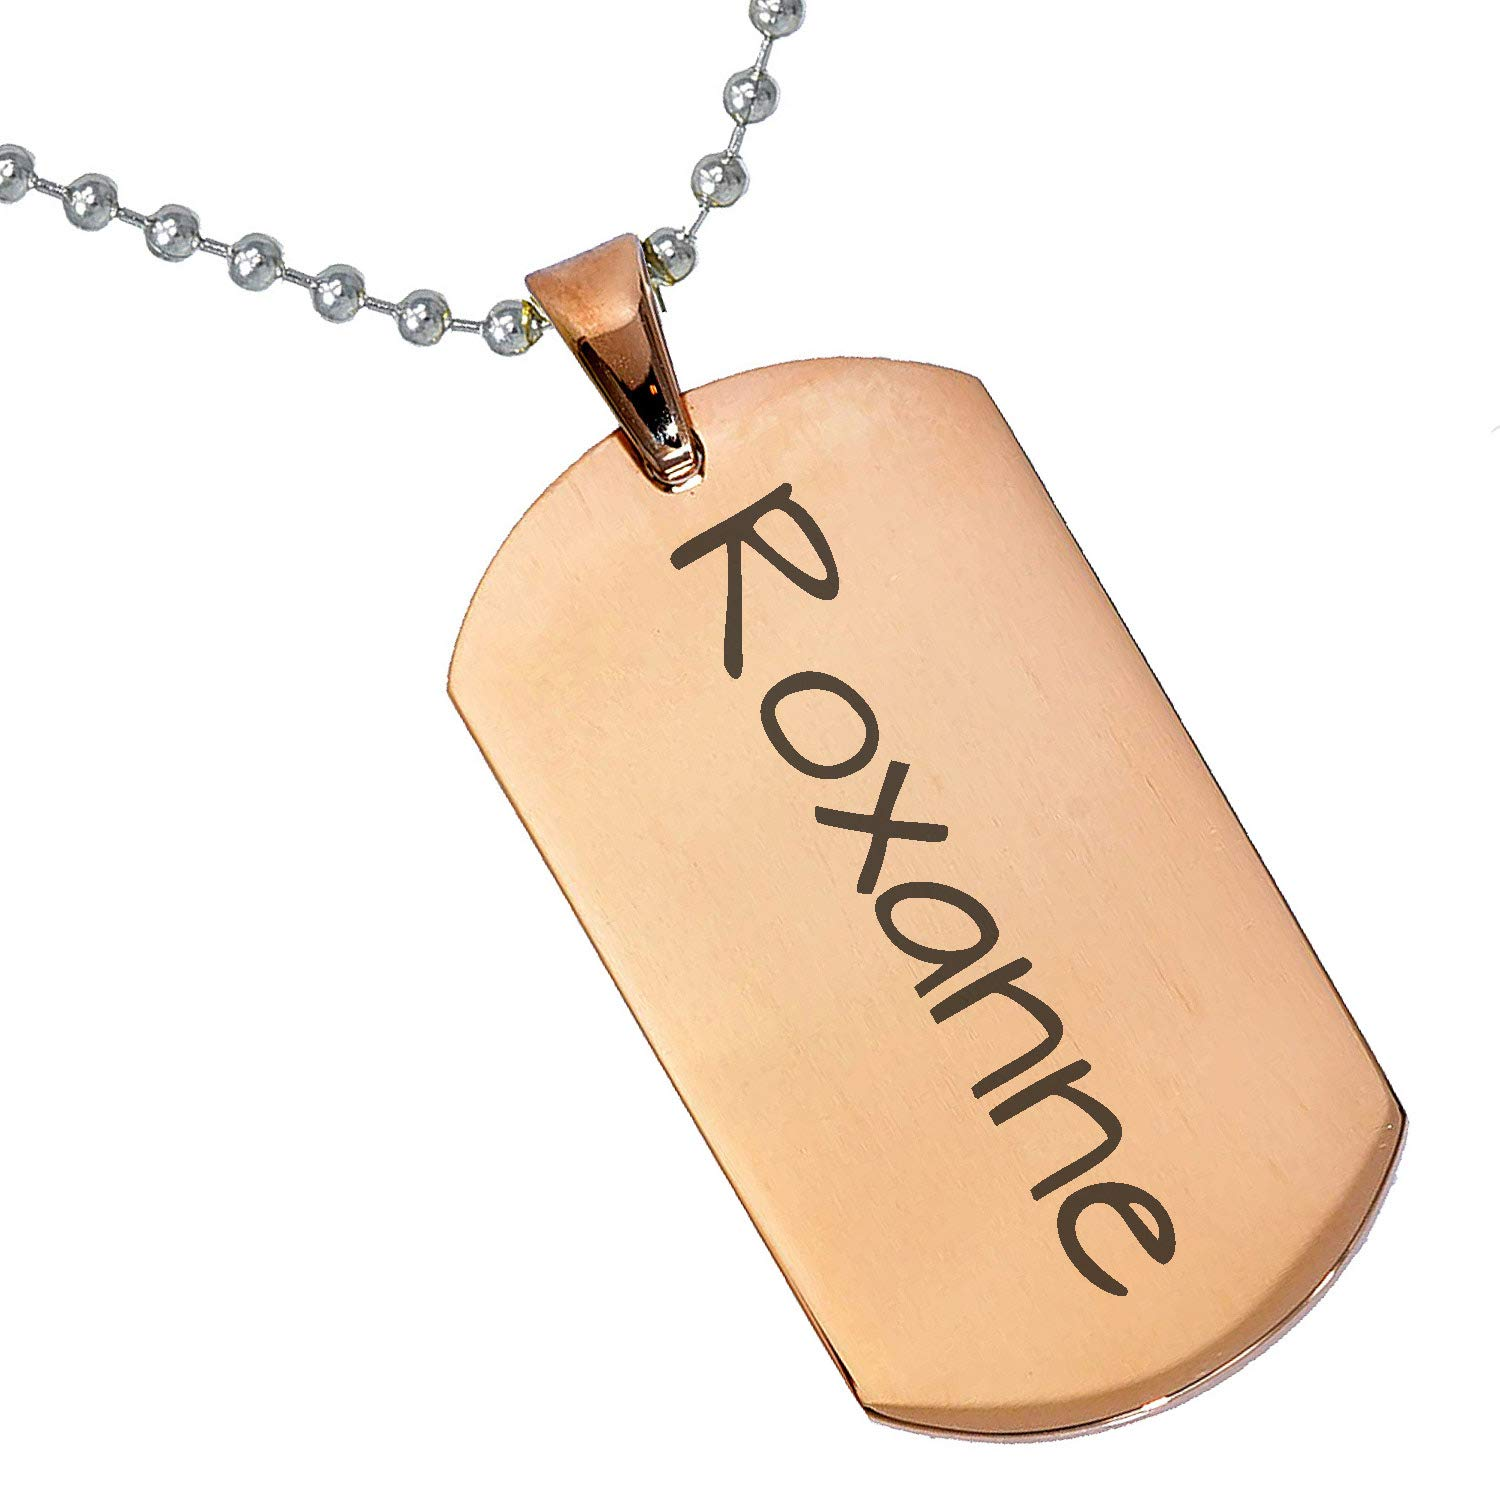 Stainless Steel Silver Gold Black Rose Gold Color Baby Name Roxanne Engraved Personalized Gifts For Son Daughter Boyfriend Girlfriend Initial Customizable Pendant Necklace Dog Tags 24 Ball Chain